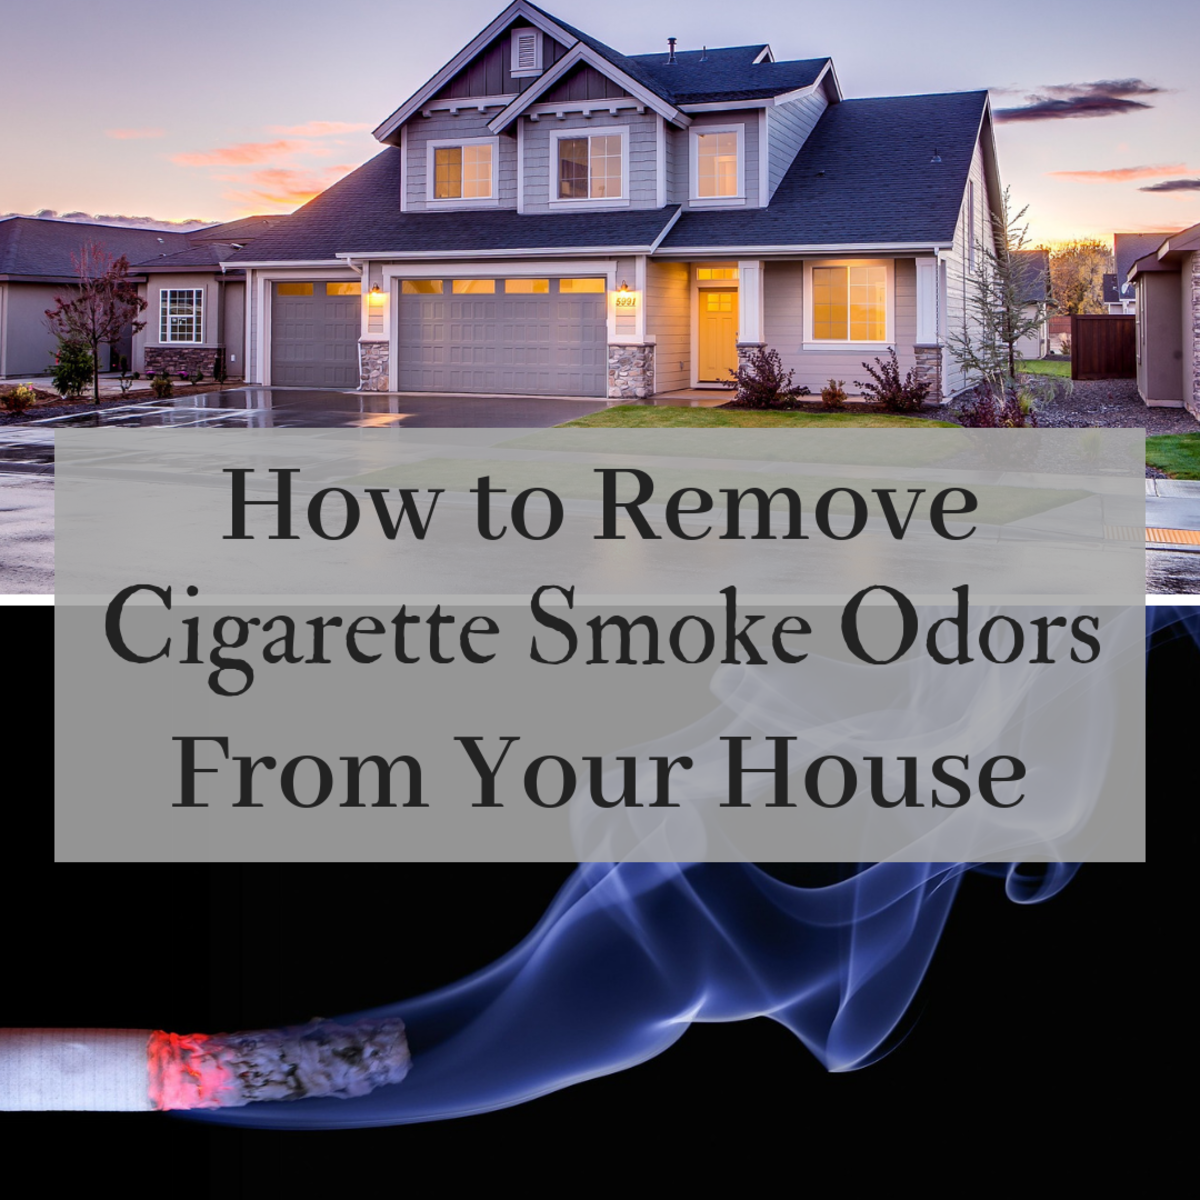 This guide will tell you everything you need to know in order to get those undesirable smoke smells out of your house.